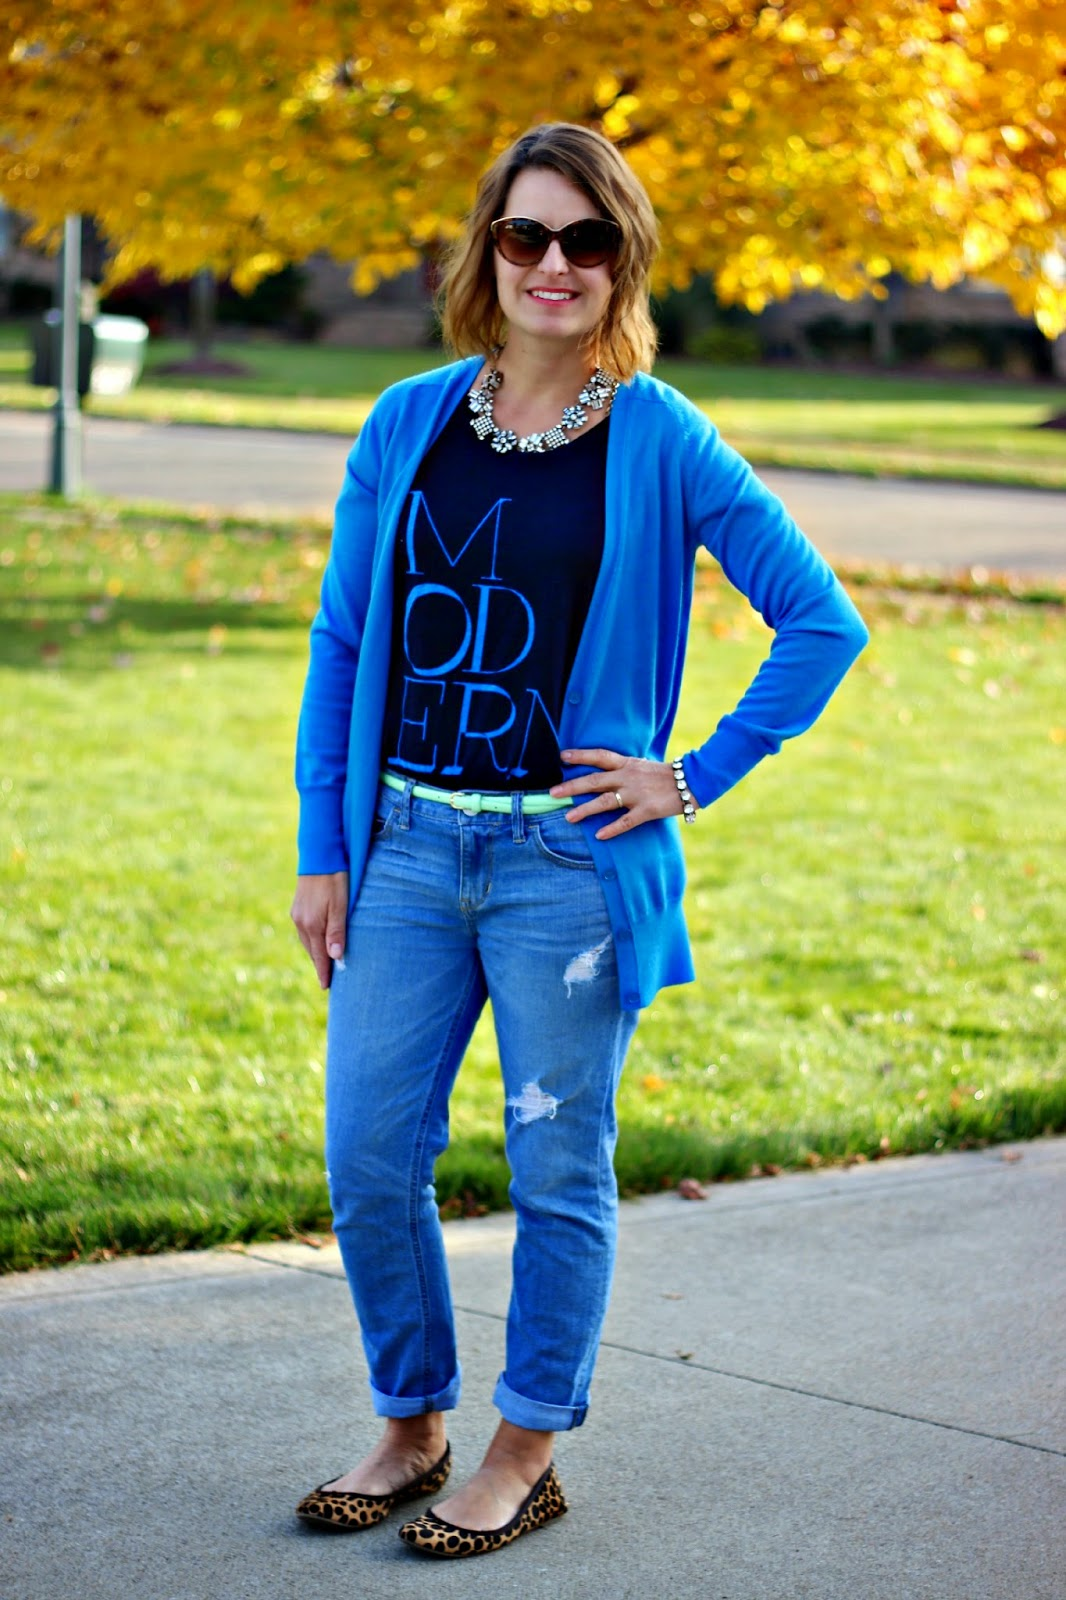 Fall look, J crew blue cardigan and MODERN top, leopard flats, distressed boyfriend jeans